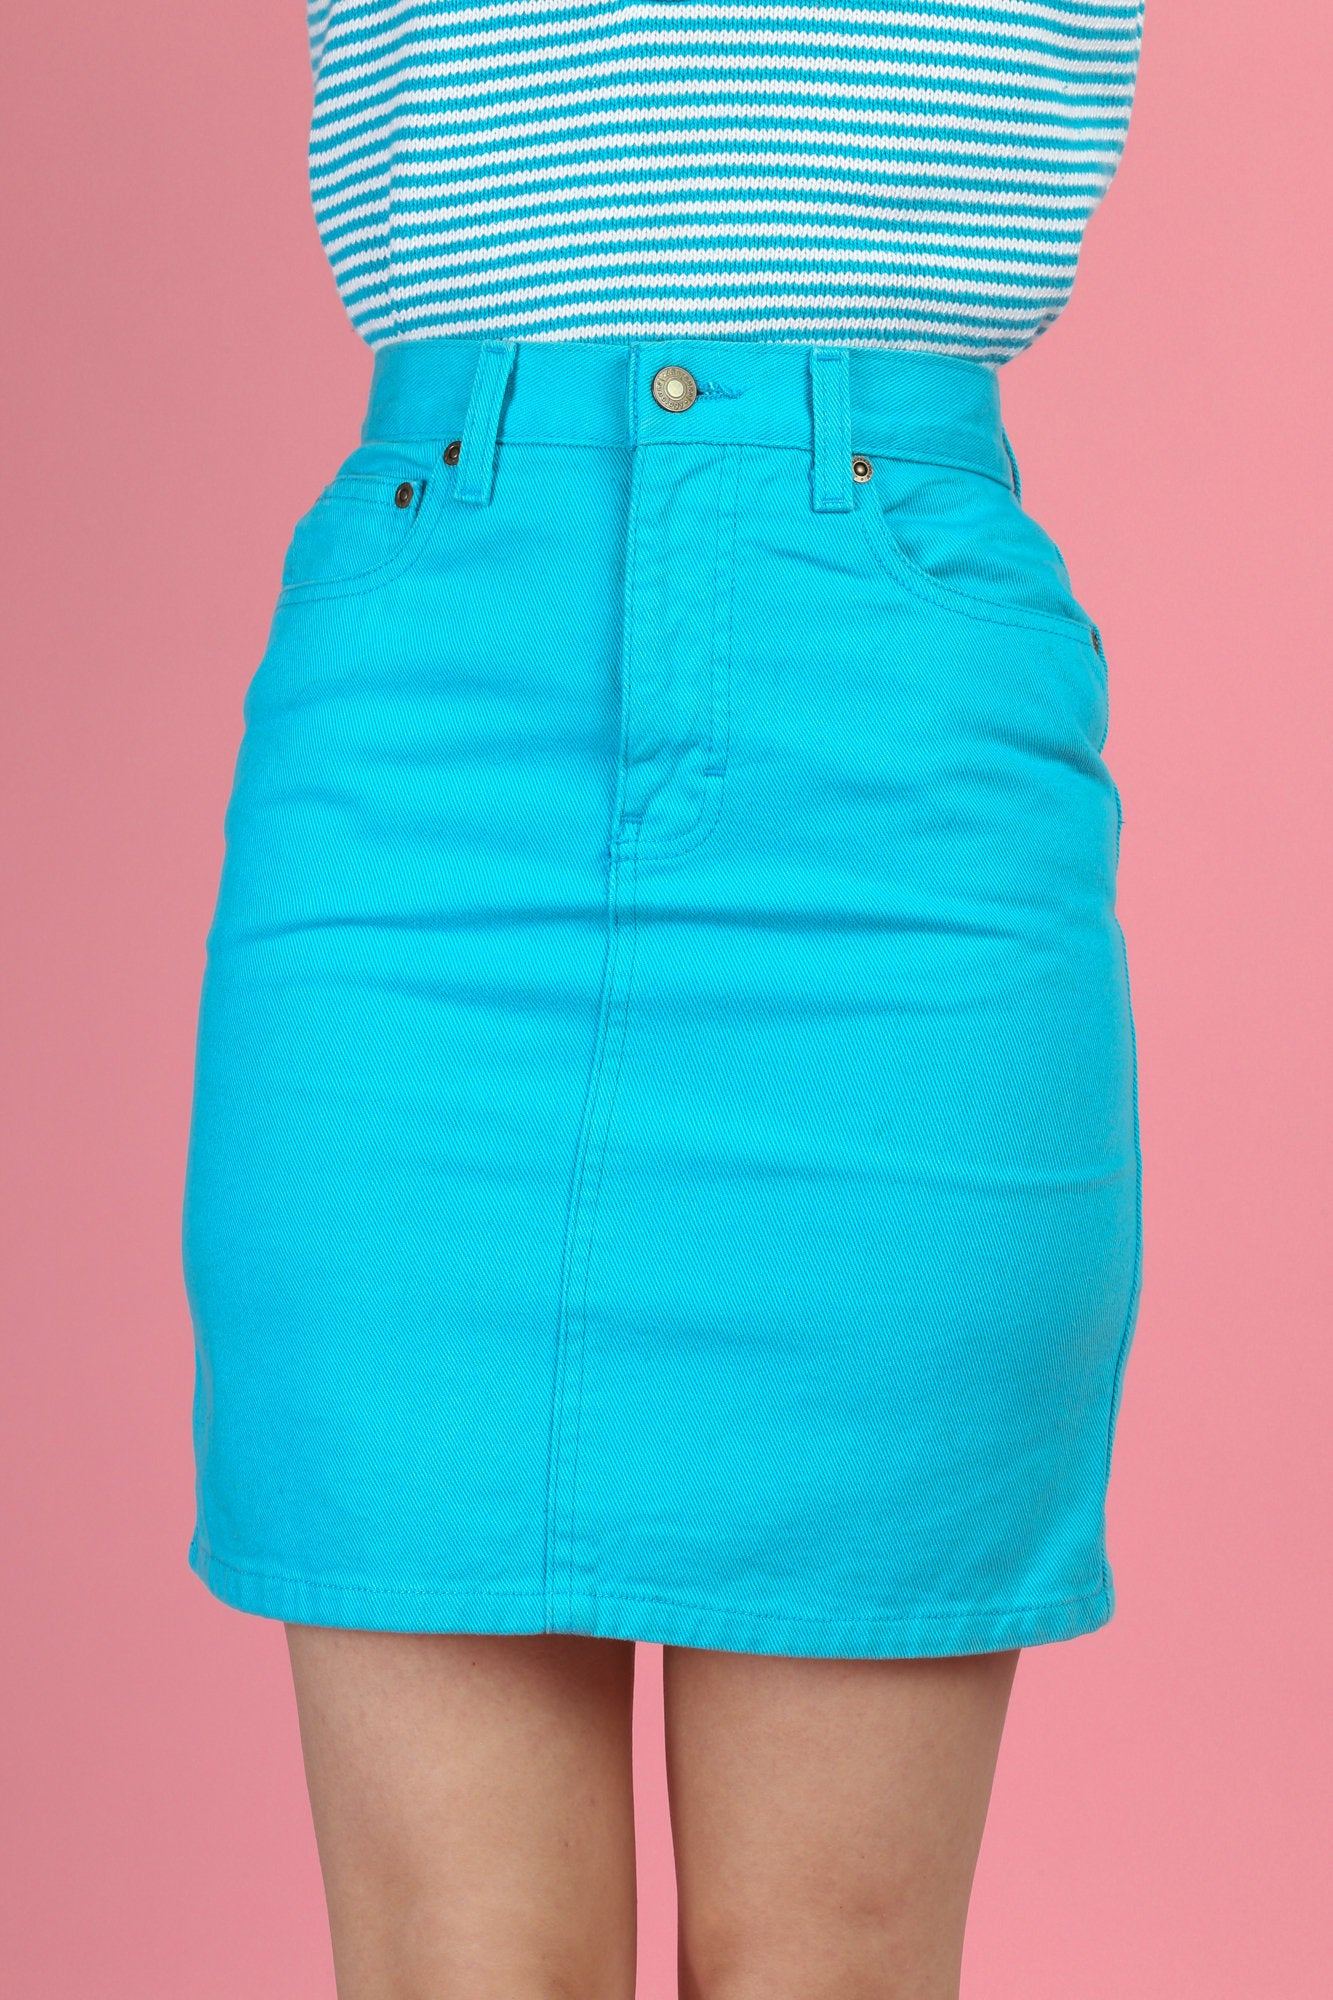 90s Bright Blue Denim Mini Skirt - Extra Small